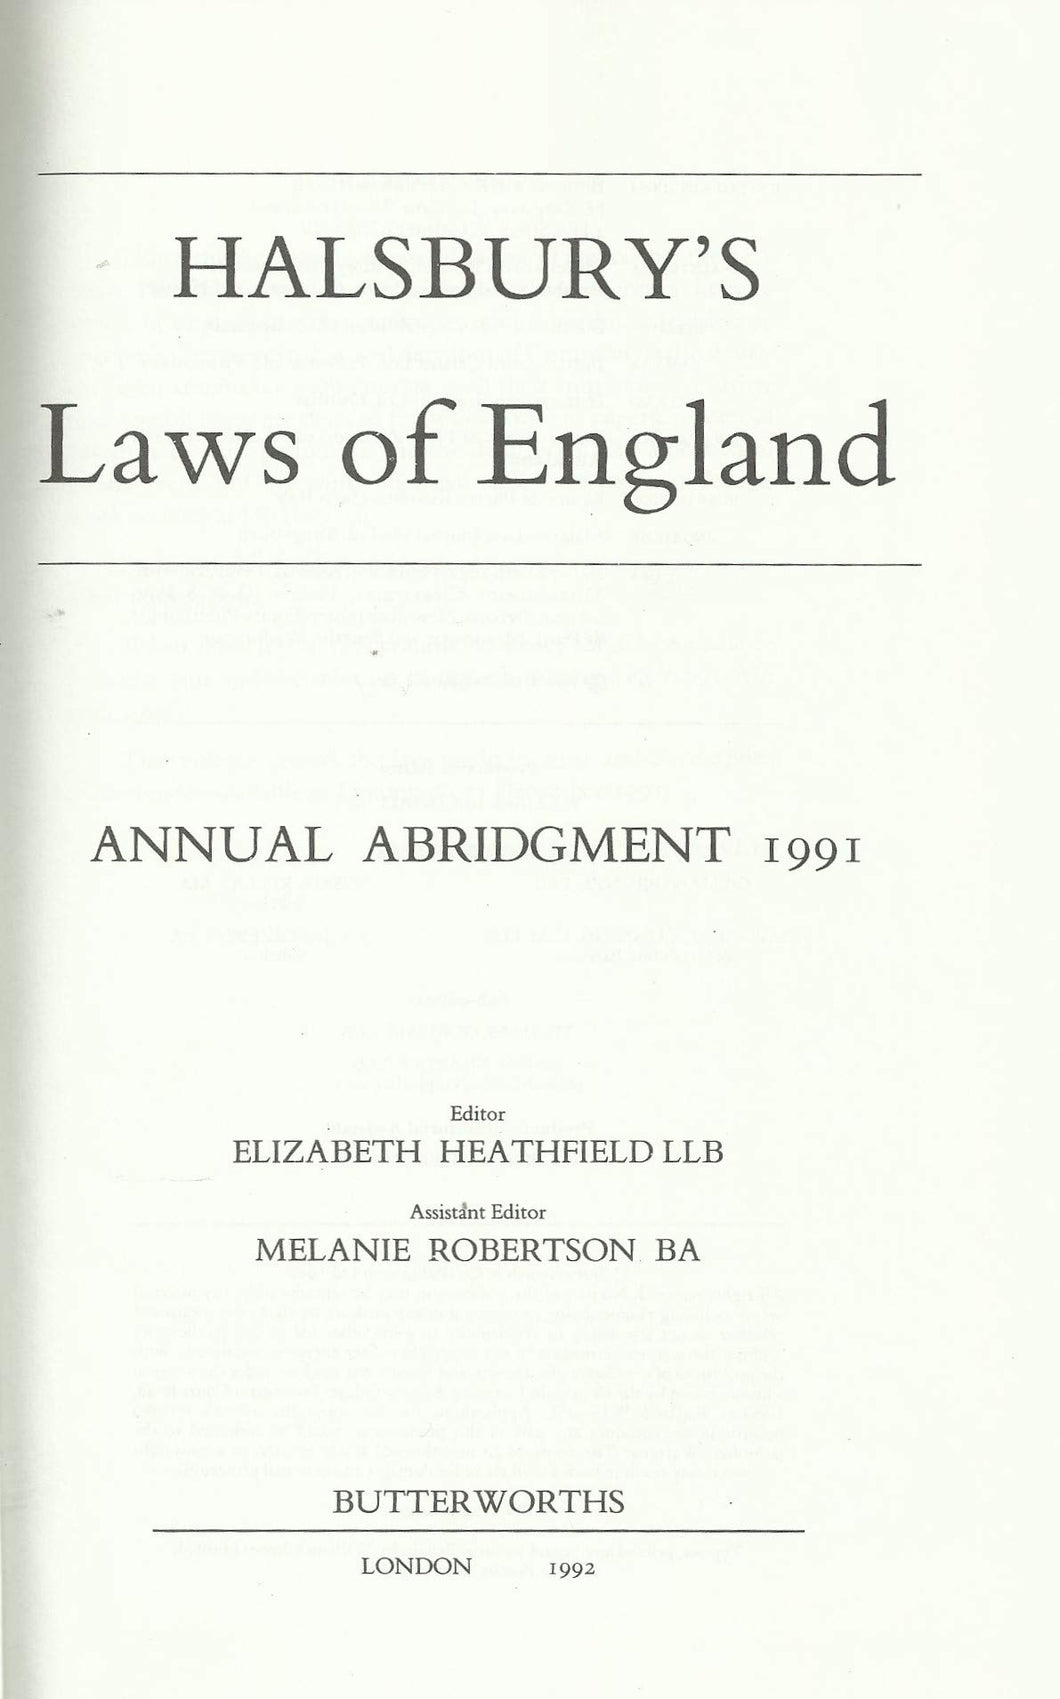 Halsbury's Laws of England Annual Abridgment 1991